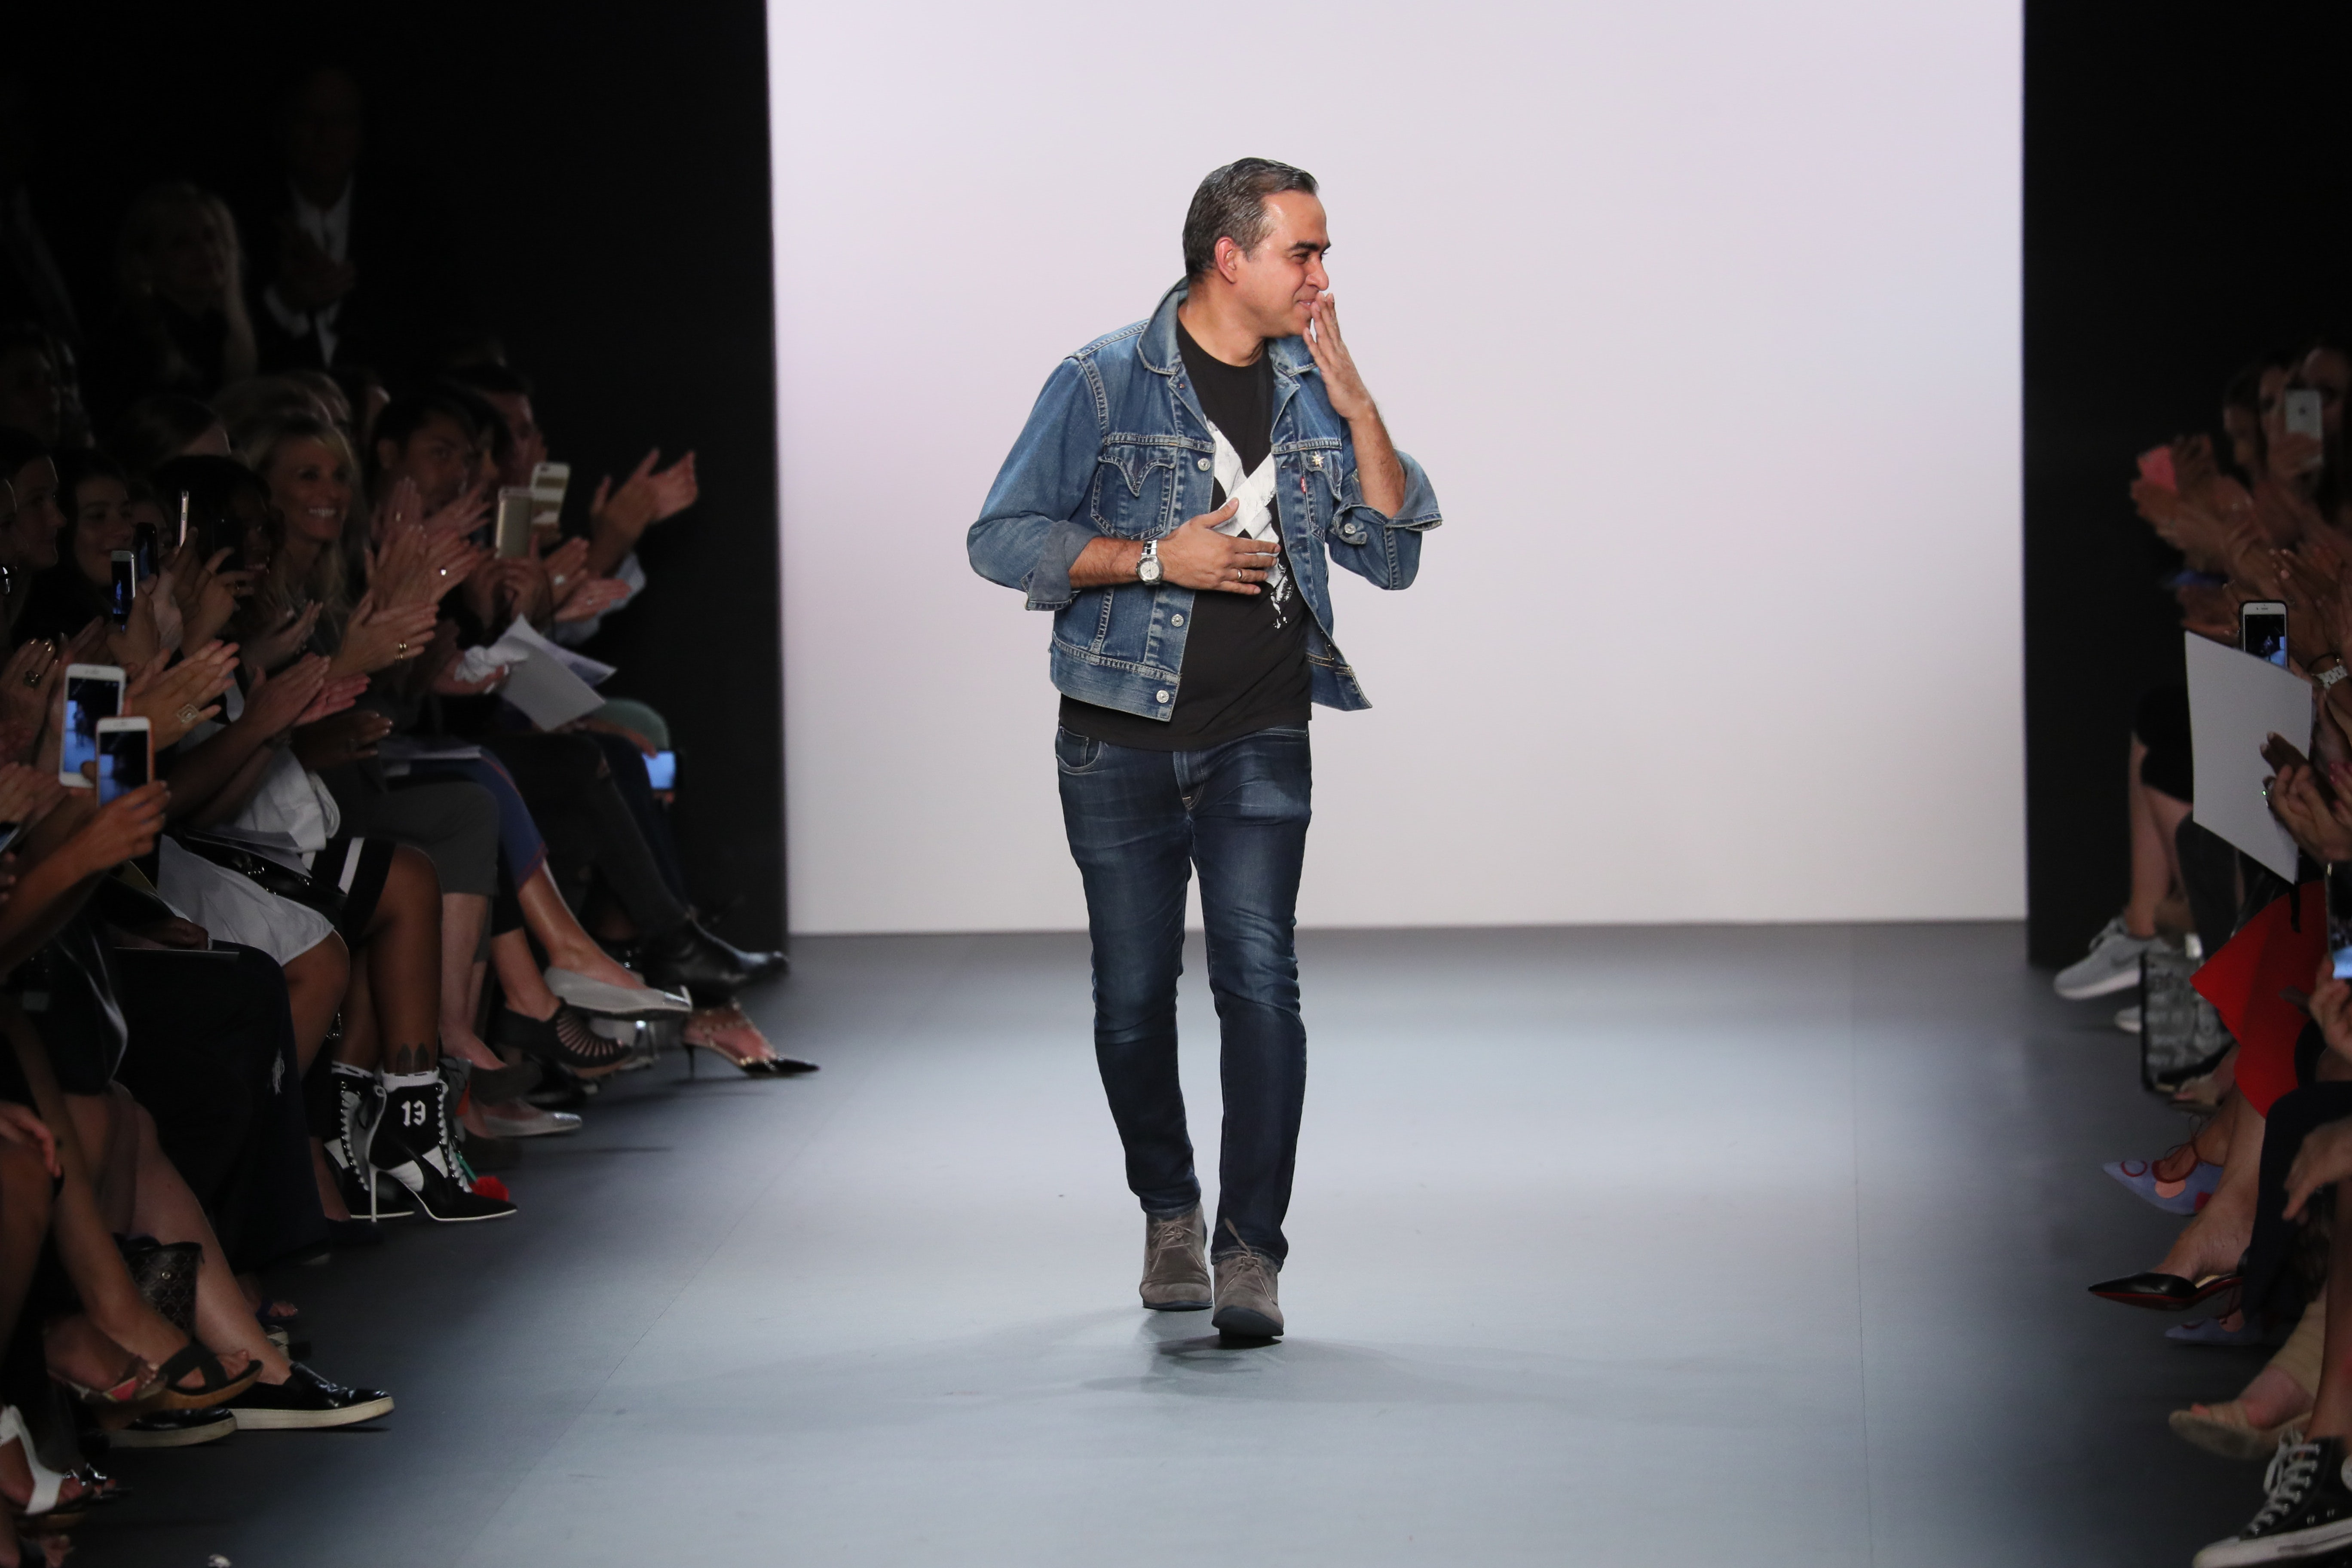 Bibhu Mohapatra at his New York Fashion Week show in September 2016 | Source: Shutterstock